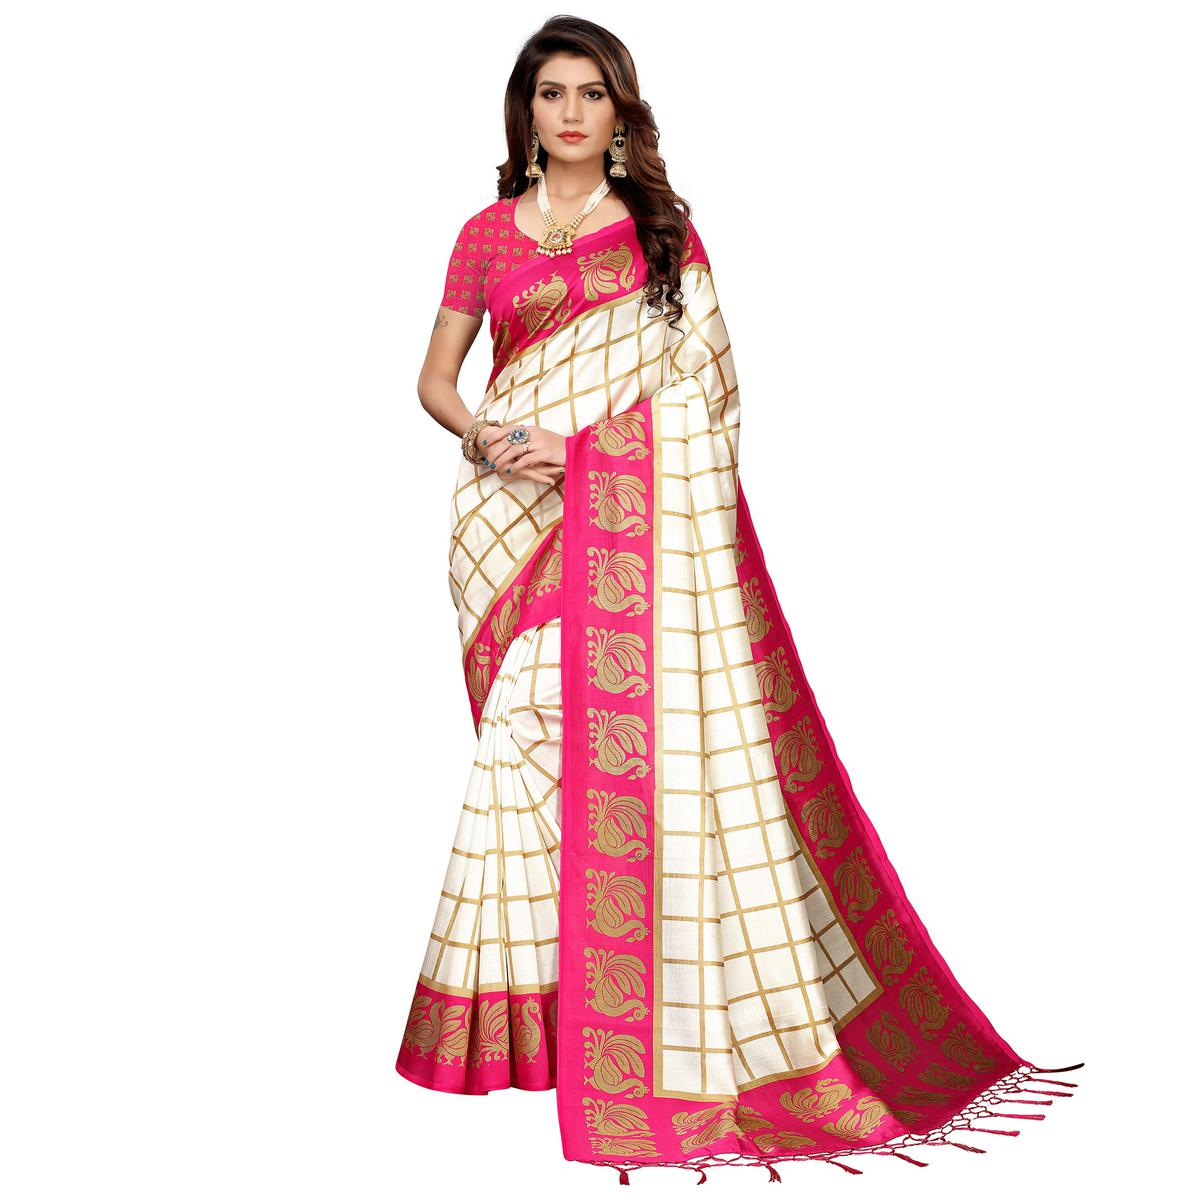 Stunning Off White-Pink Colored Festive Wear Art Silk Saree